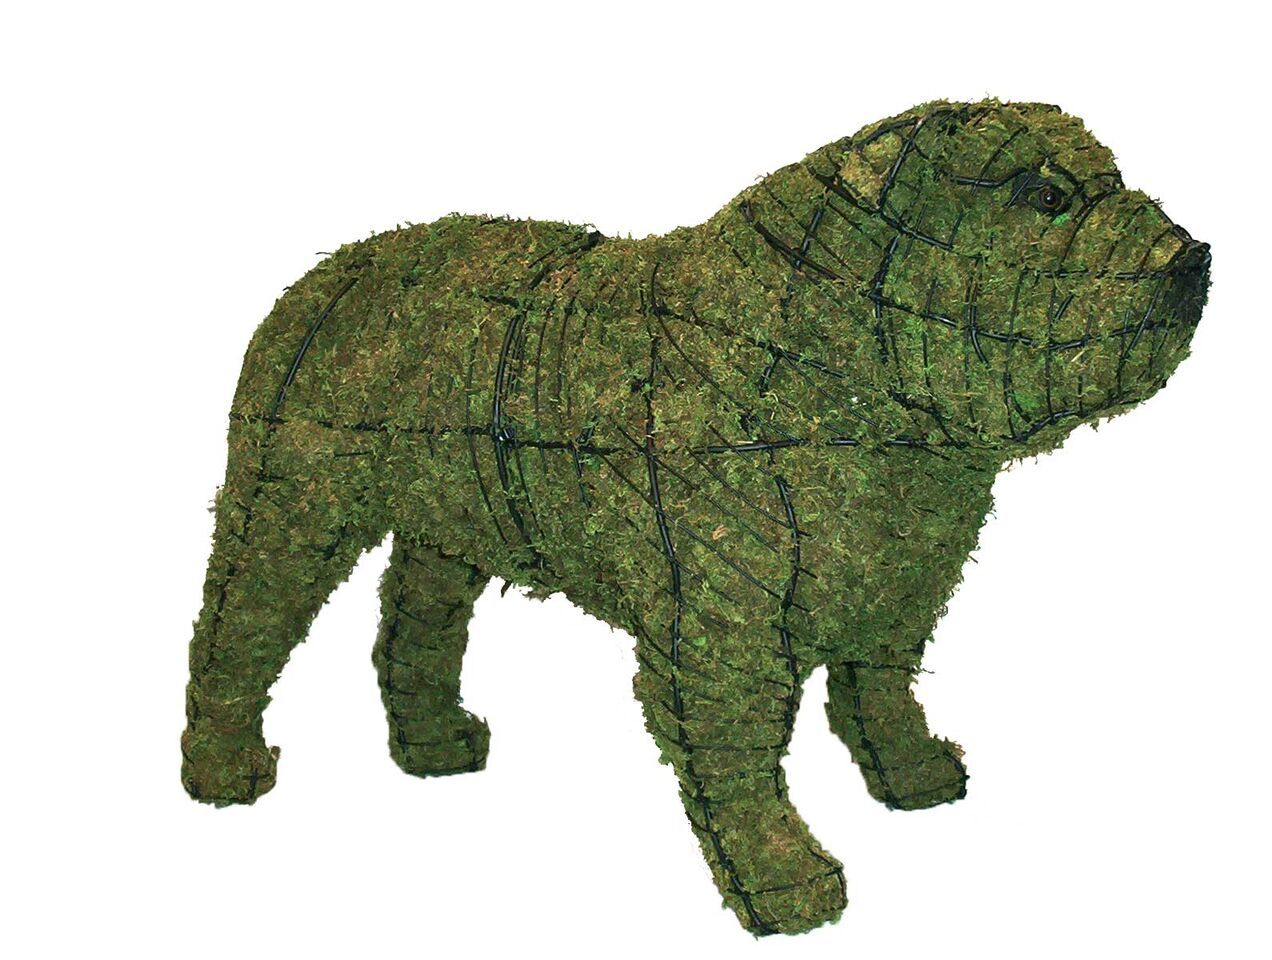 Bull Dog Rust Free Steel Topiary Frame filled with Green Dyed Sphagnum Moss - Henderson Garden Supply